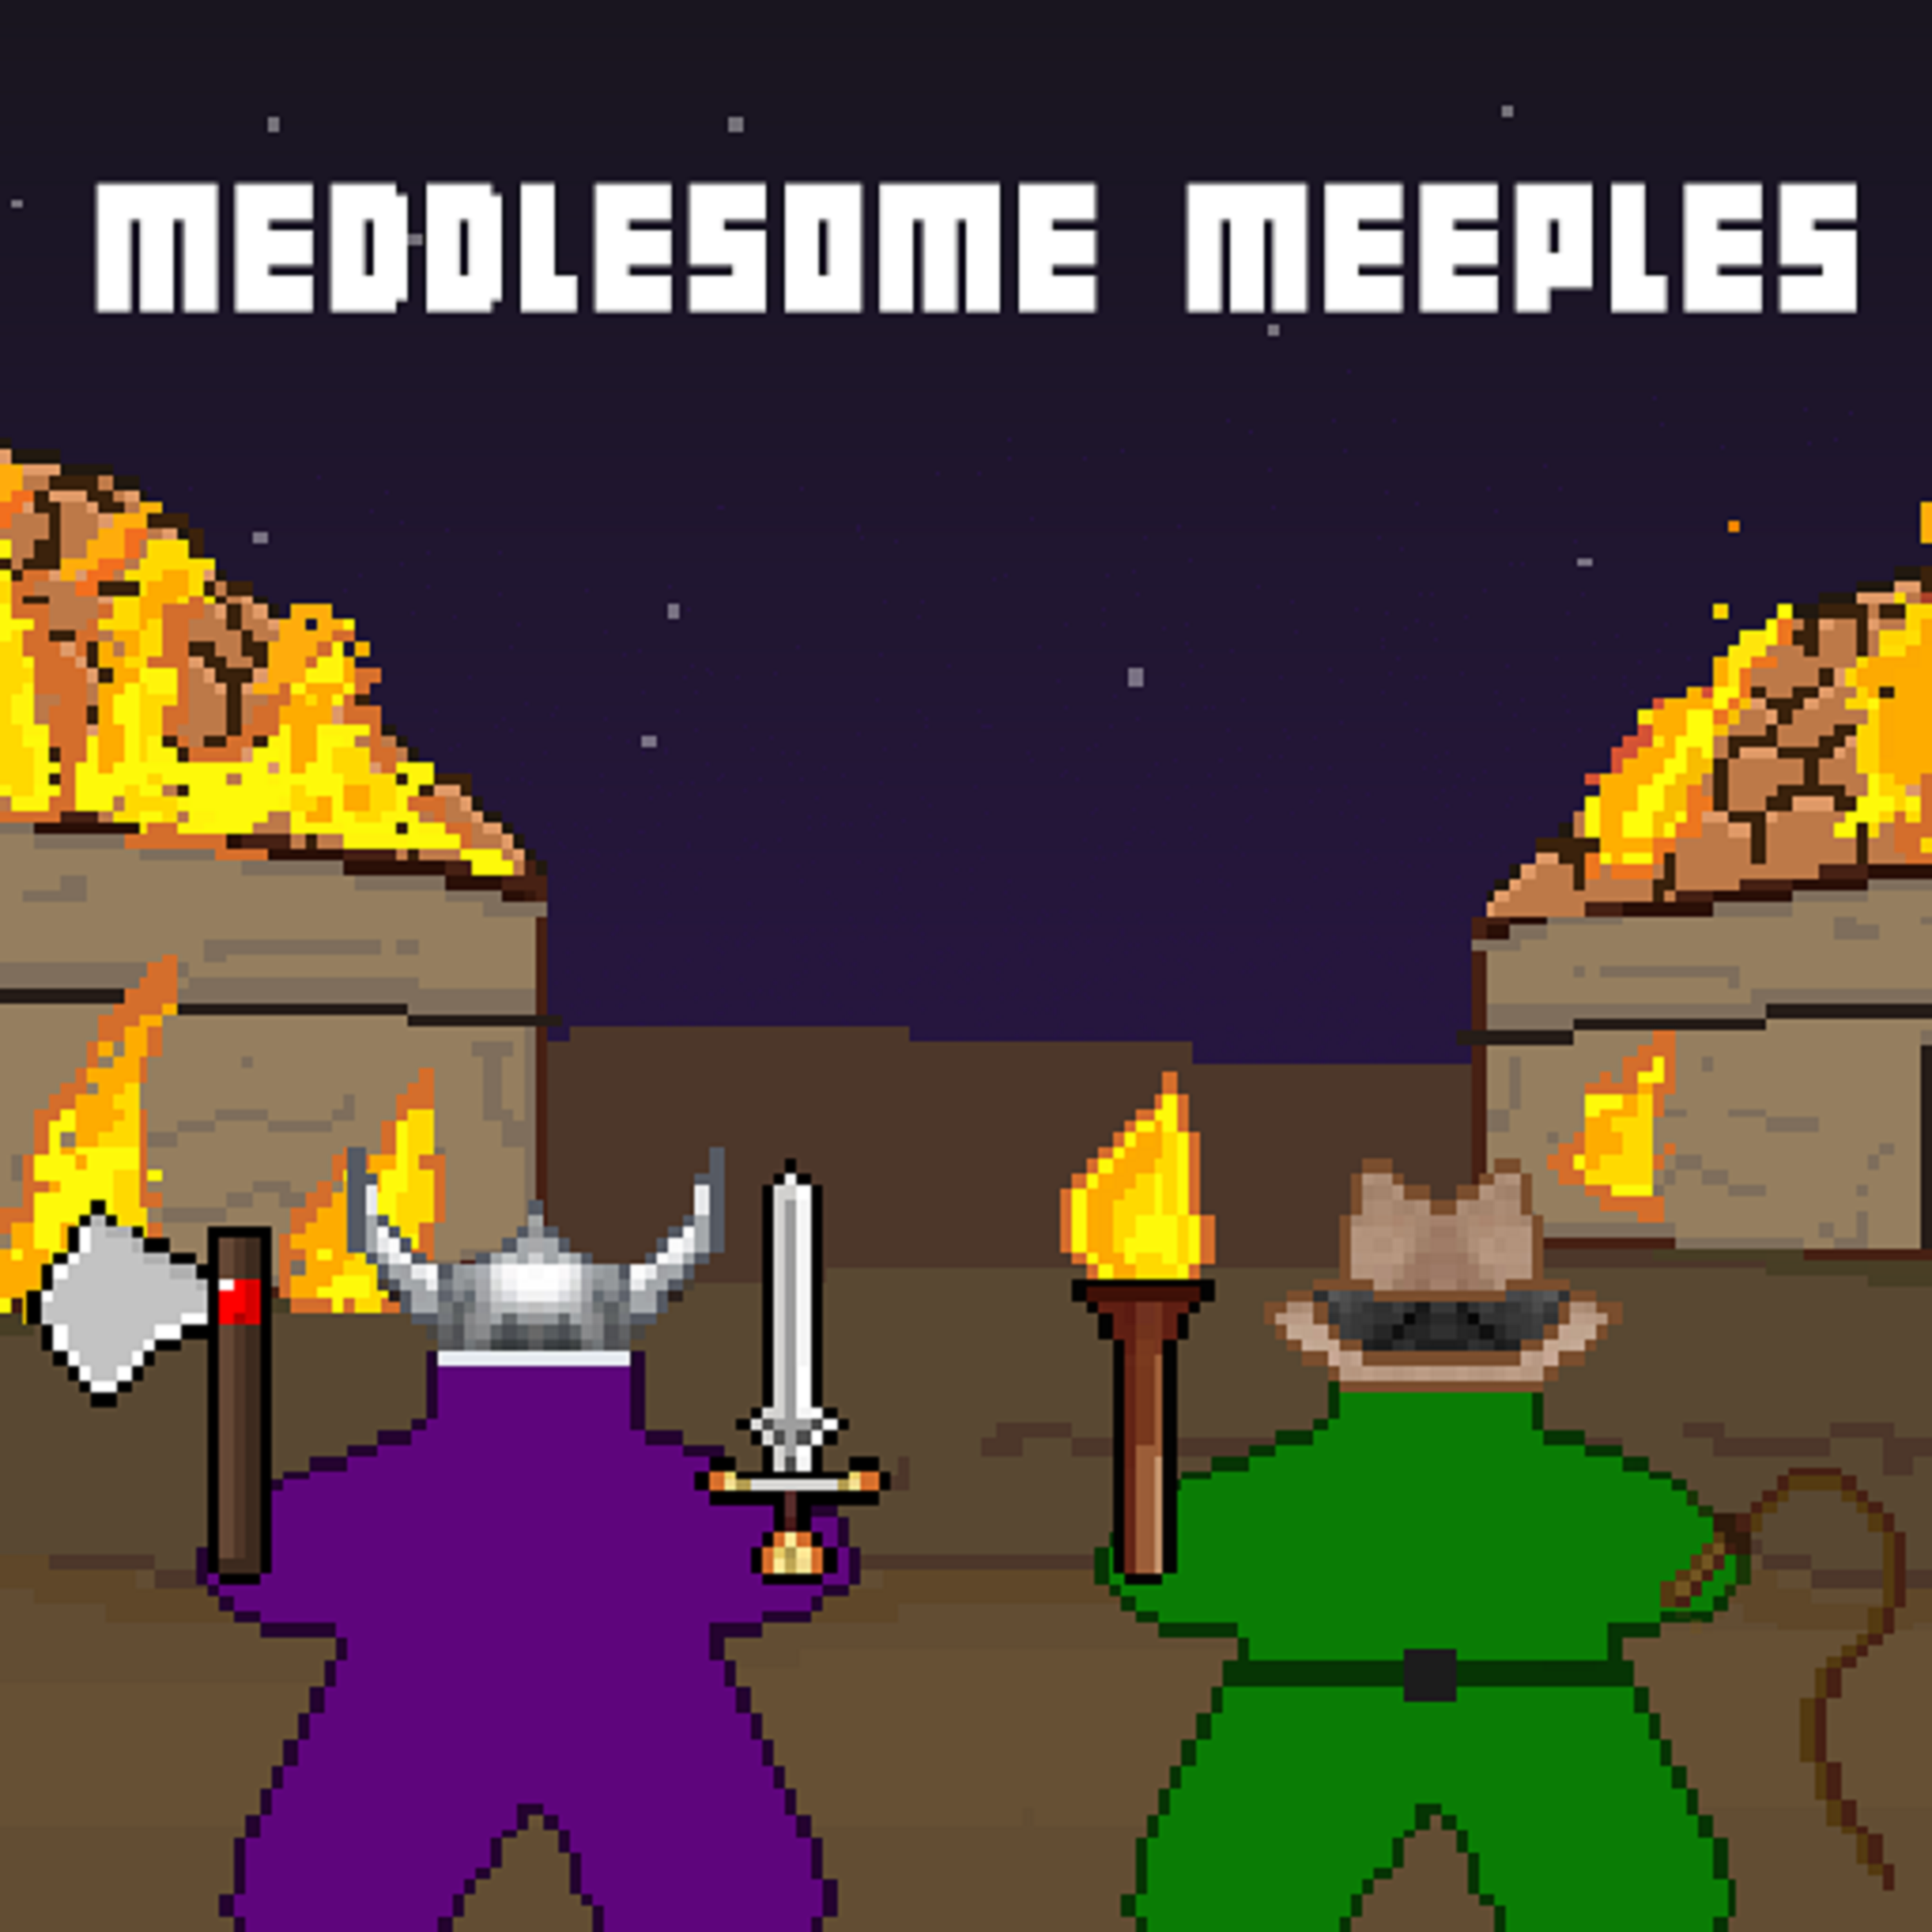 The Meddlesome Meeples